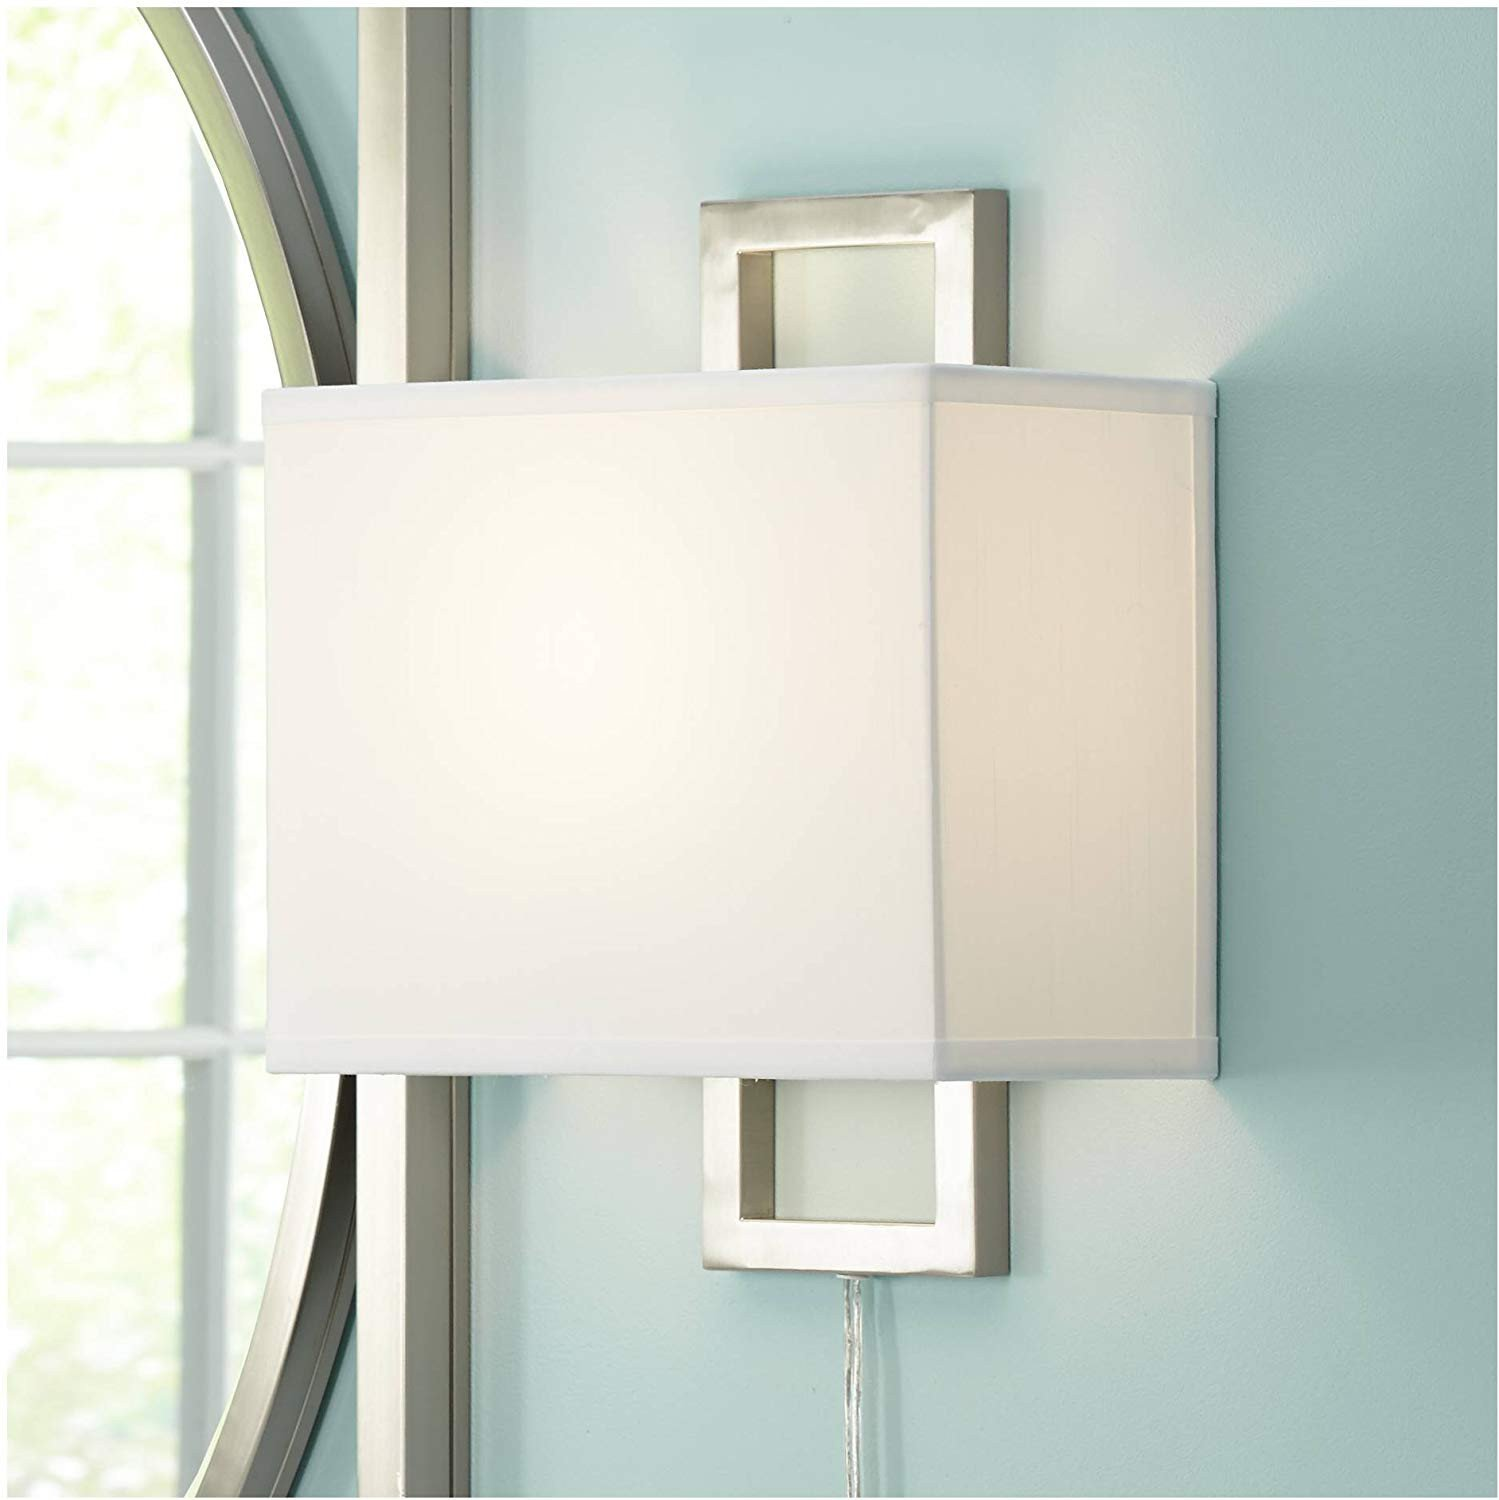 Plug In Wall Lamps for Bedroom Unique Aundria Modern Wall Lamp Plug In Rectangular Brushed Nickel White Shade for Living Room Bedroom Reading Possini Euro Design